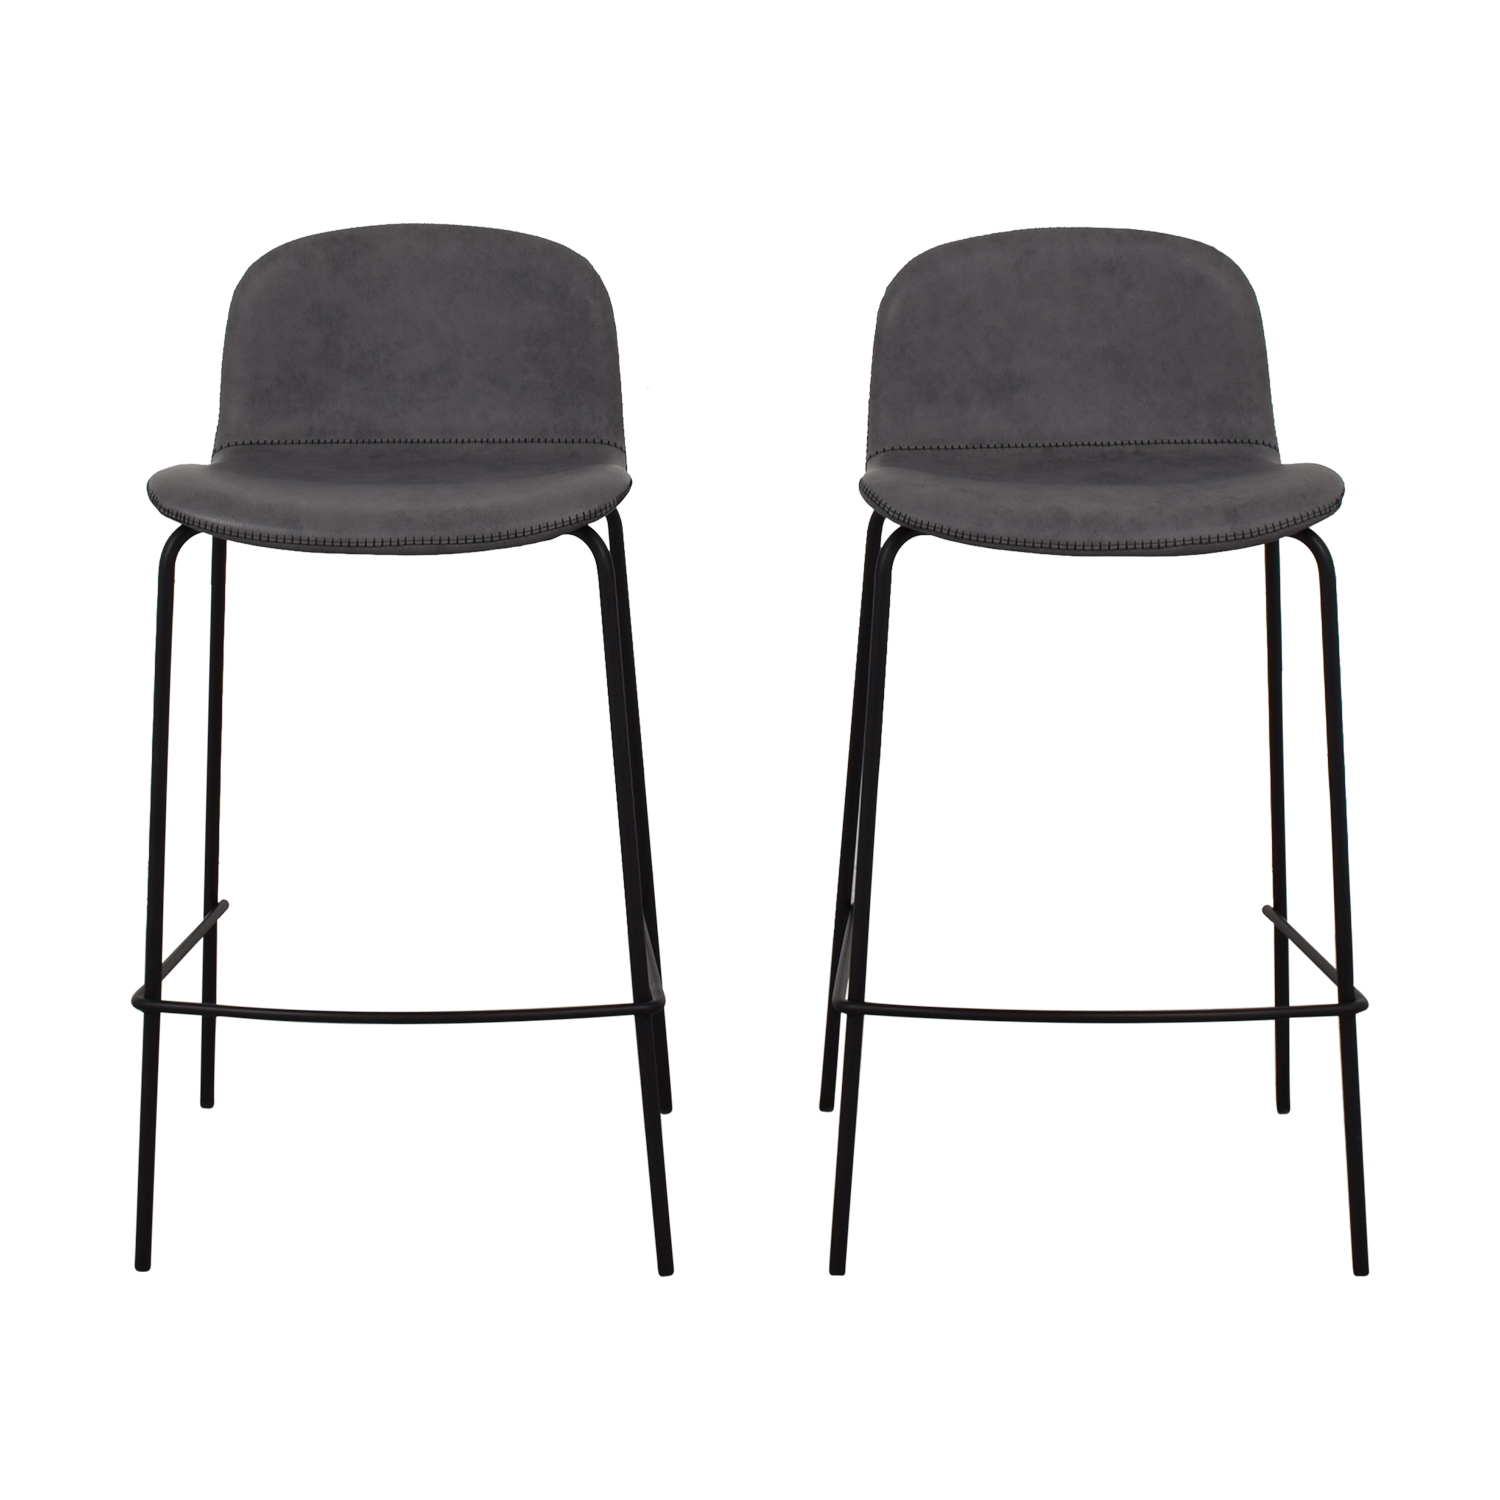 CB2 CB2 Primitivo Bar Stools coupon